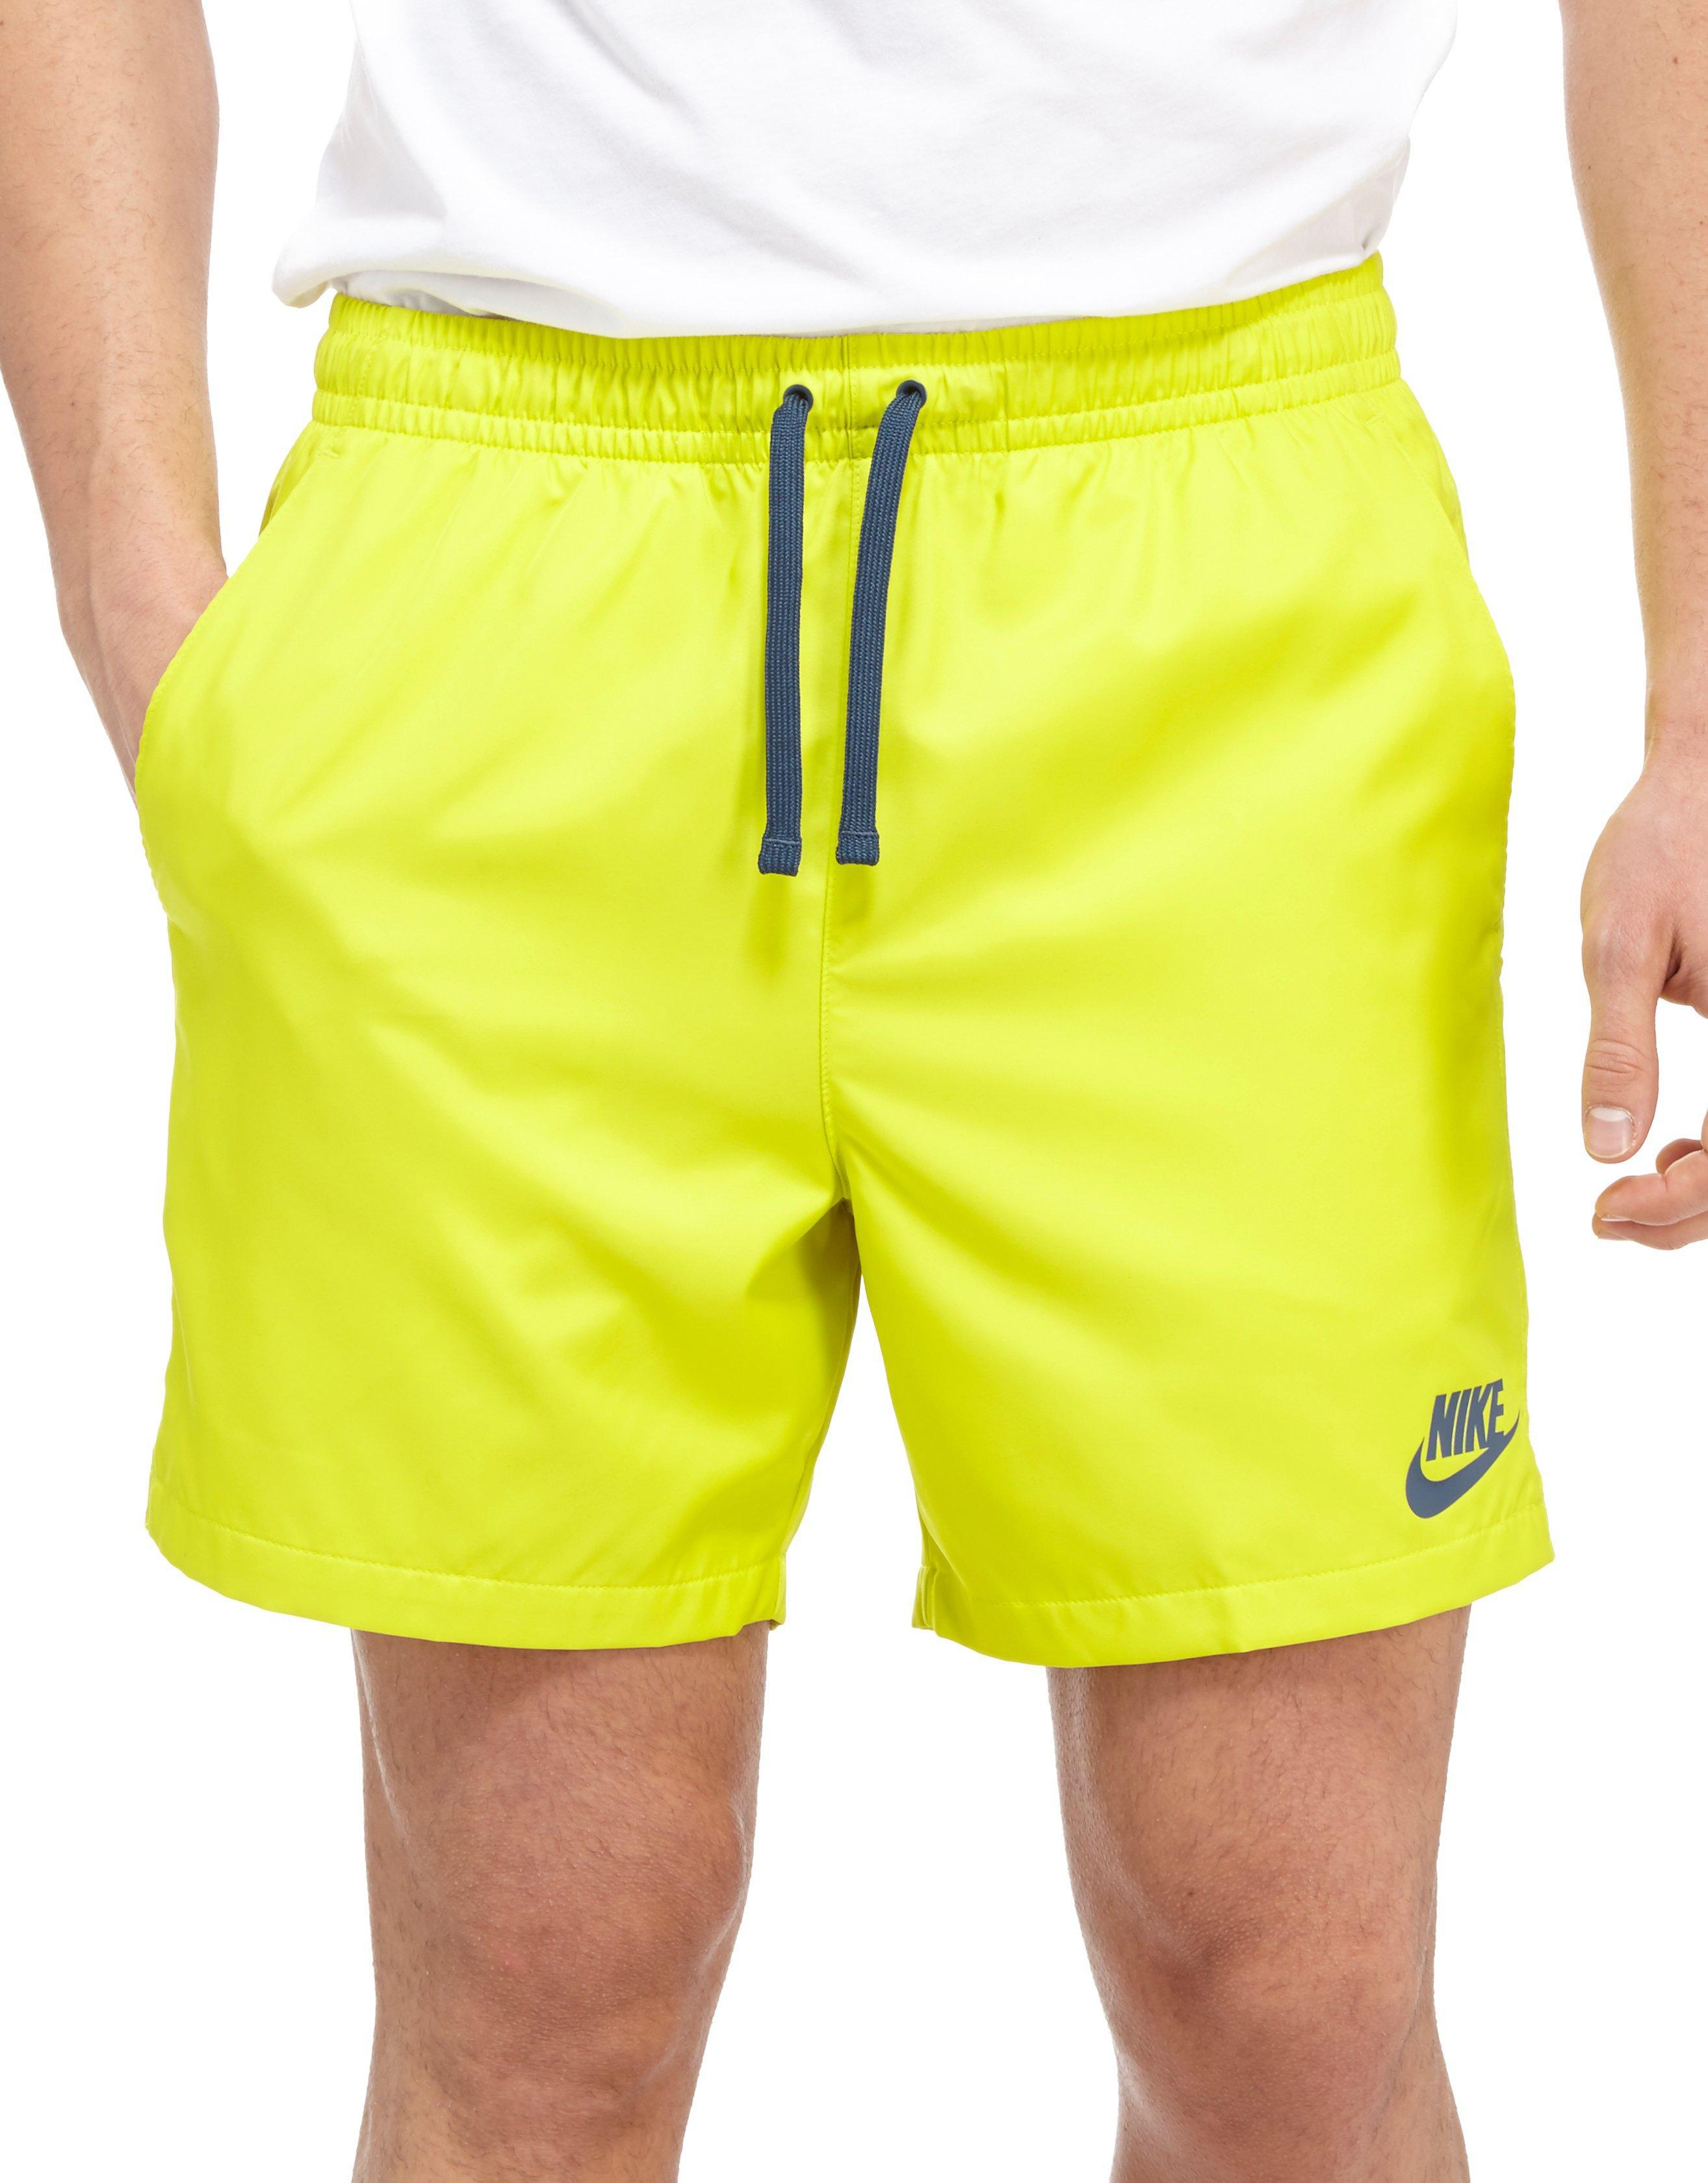 c196bfc962d Nike Flow Swimming Short in Yellow for Men - Lyst